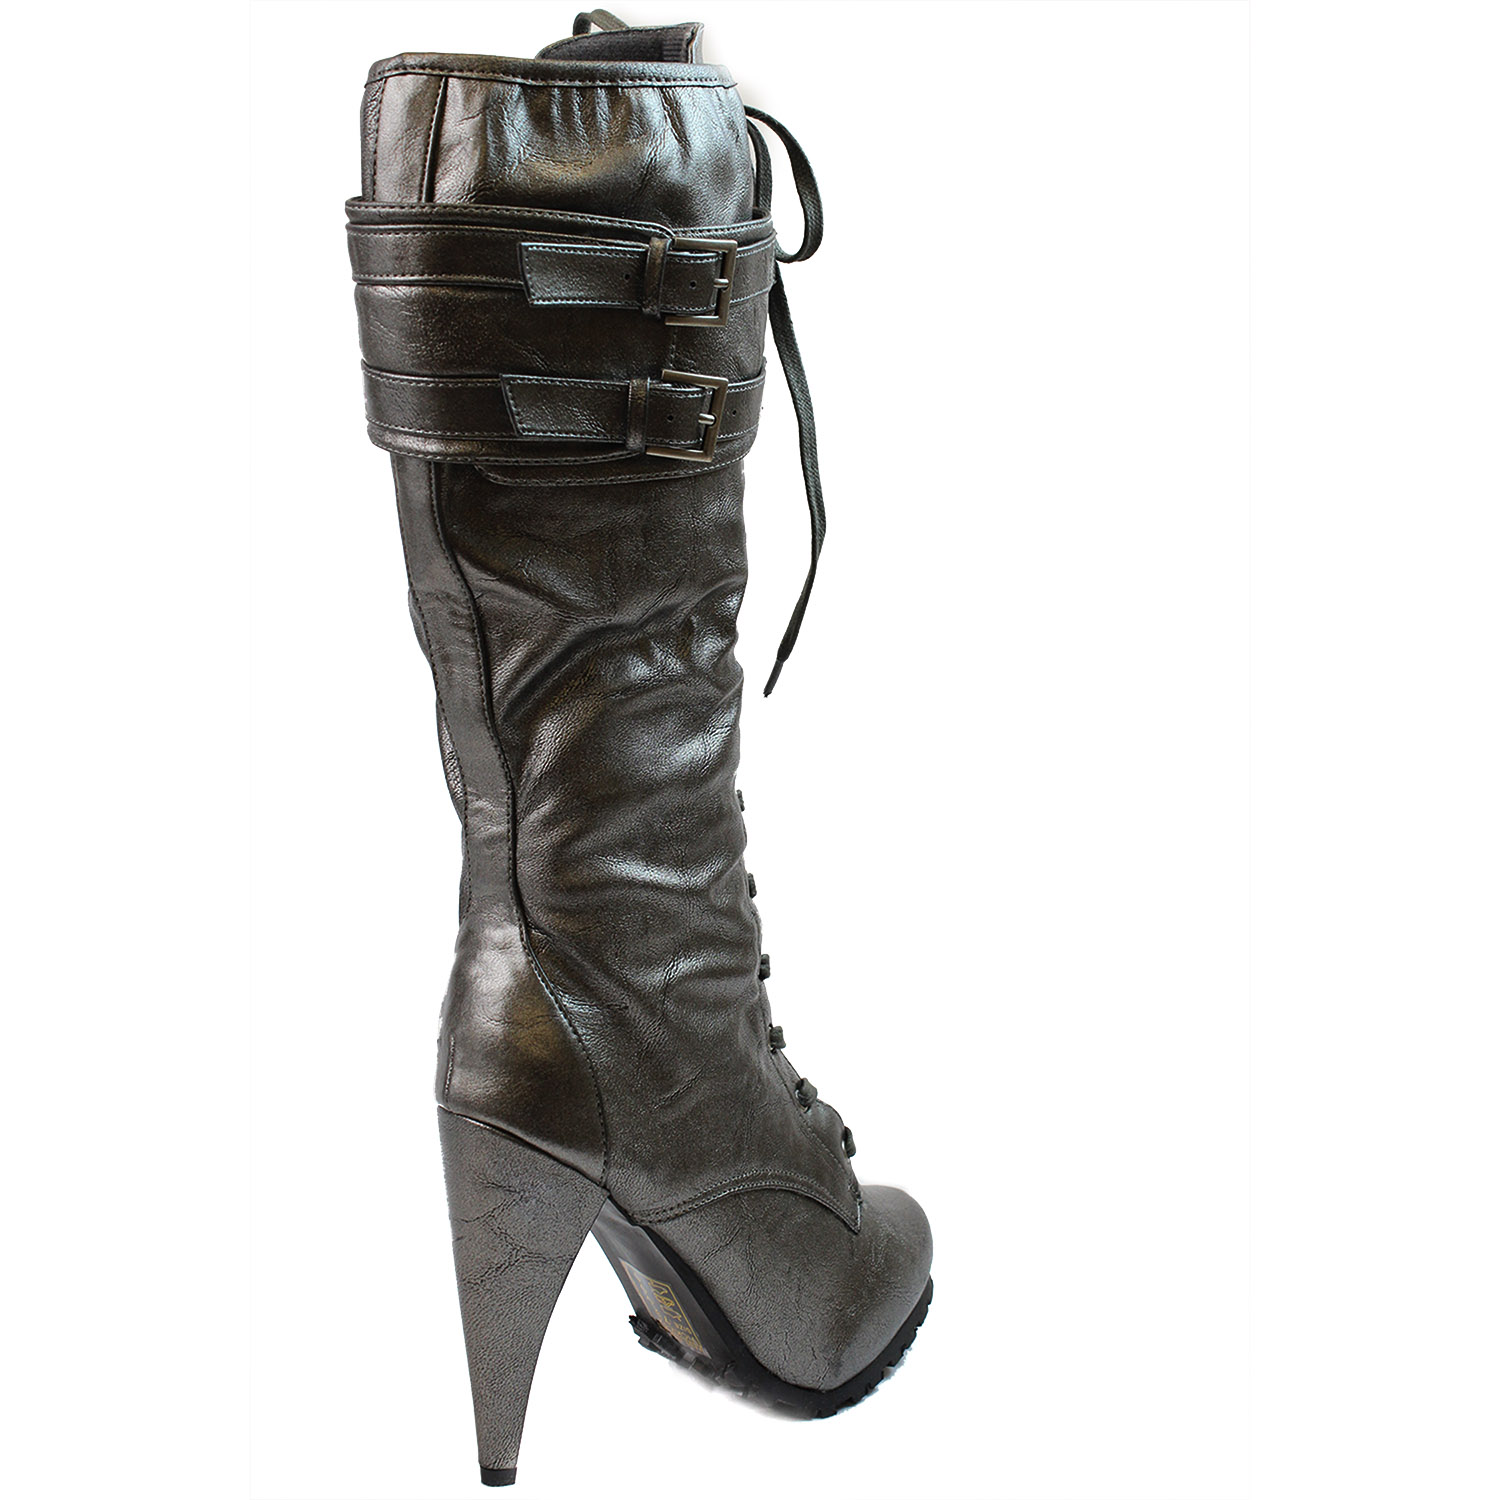 Innovative Women Riding Boots Slouch Manmade Leather Sexy Stylish Shoes Fashion Knee High | EBay